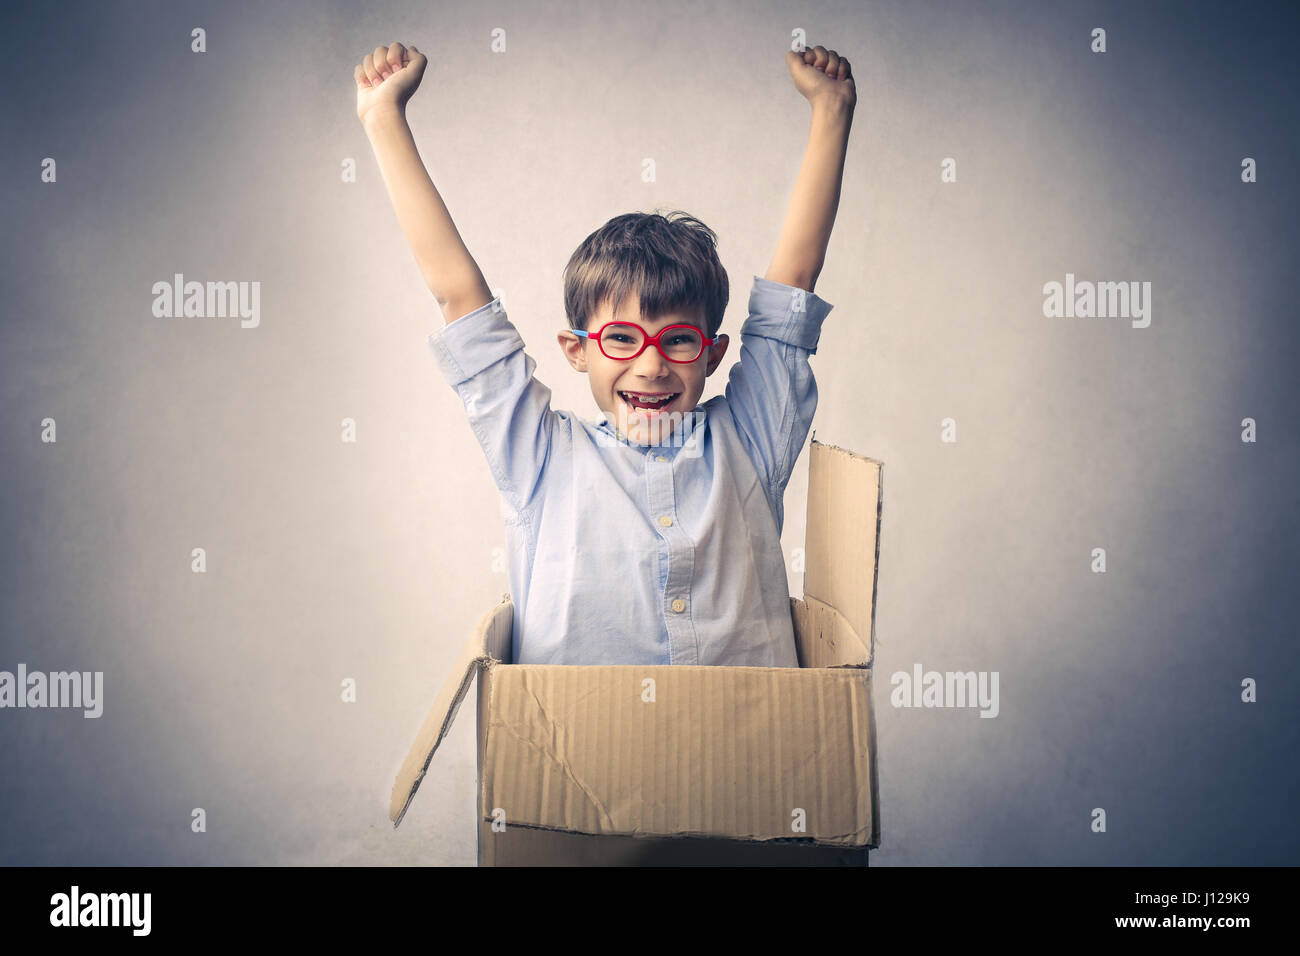 Little boy coming out of box - Stock Image